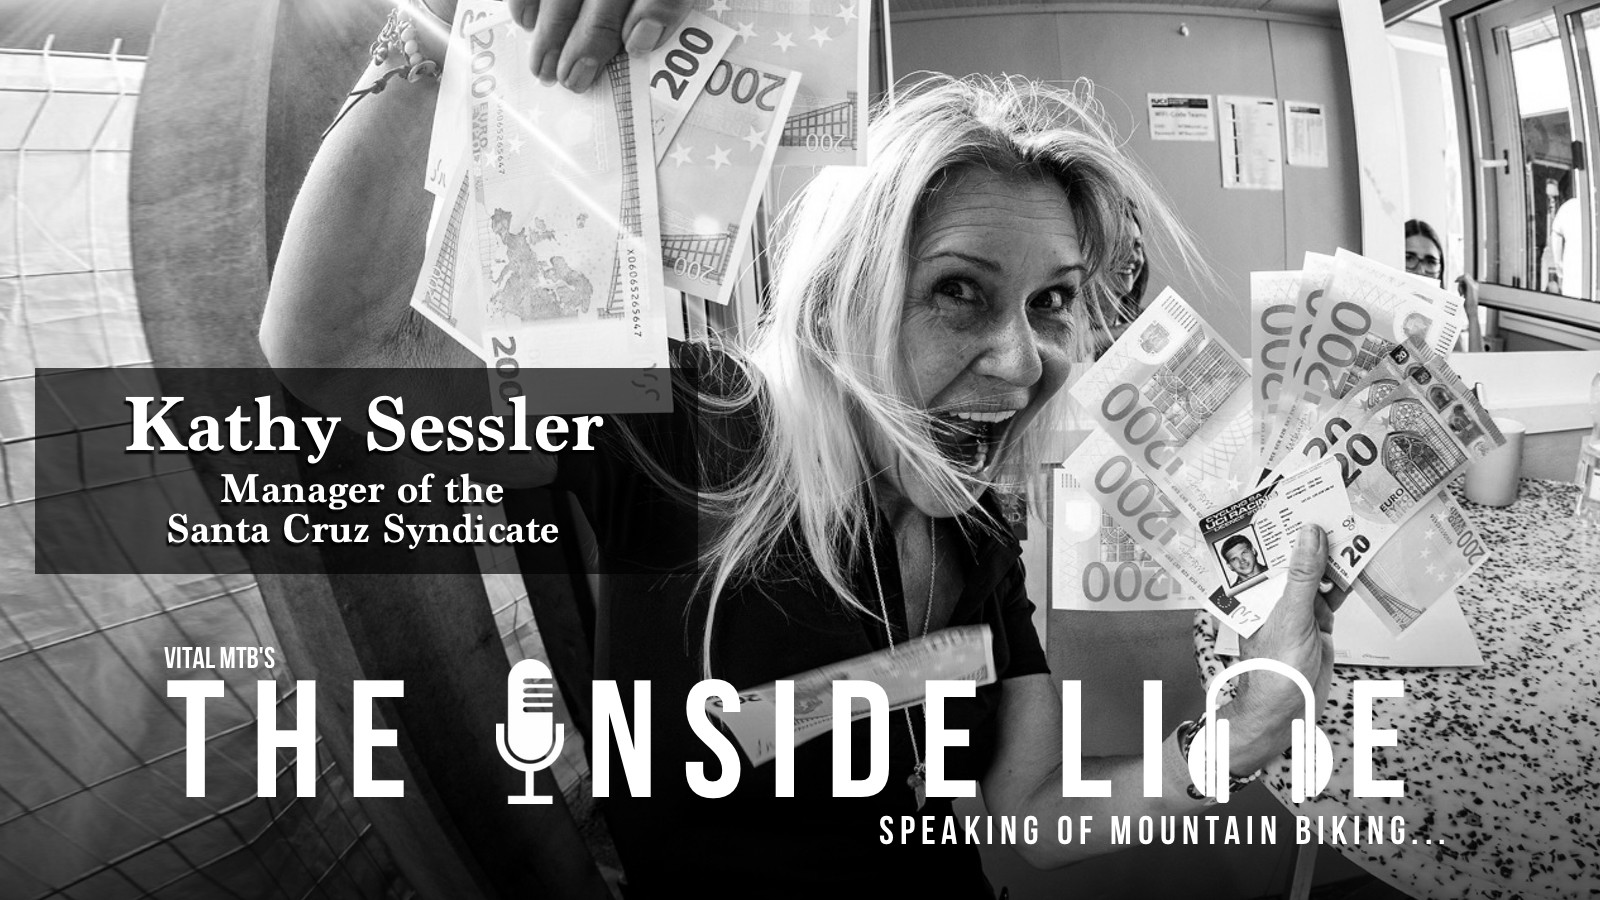 The Inside Line Podcast - Kathy Sessler, Manager of the Santa Cruz Syndicate